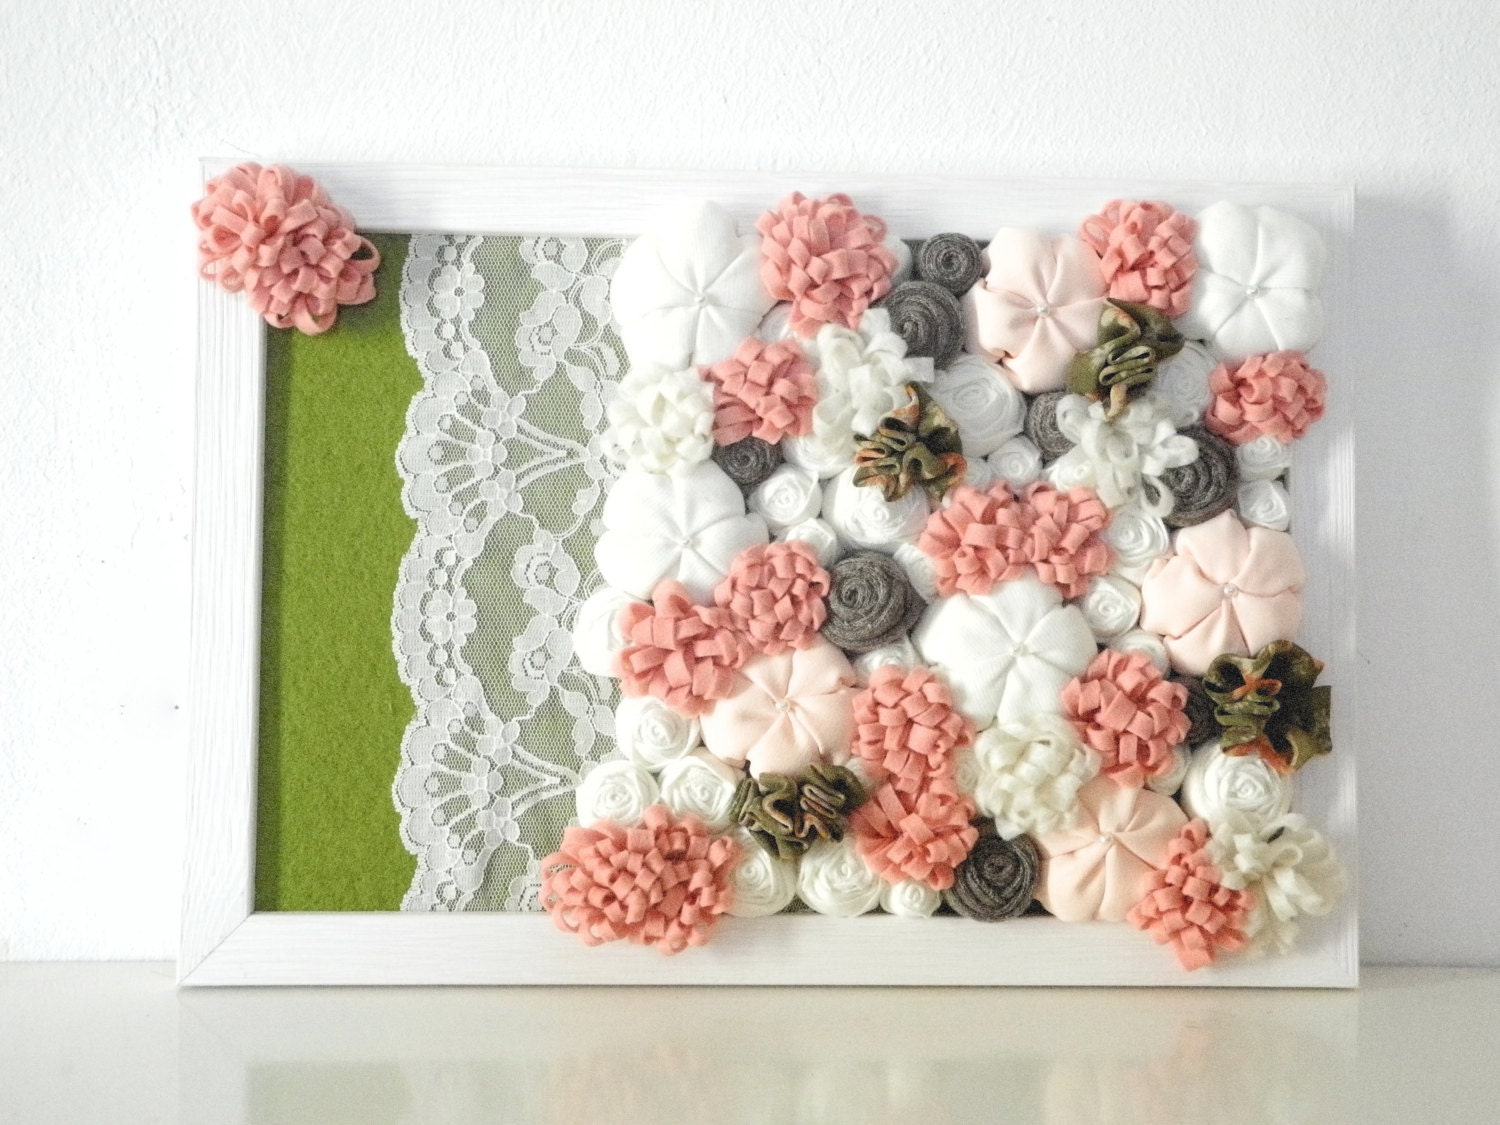 Framed fabric flowers home decor 3d design wall art pink white for Floral decorations for home